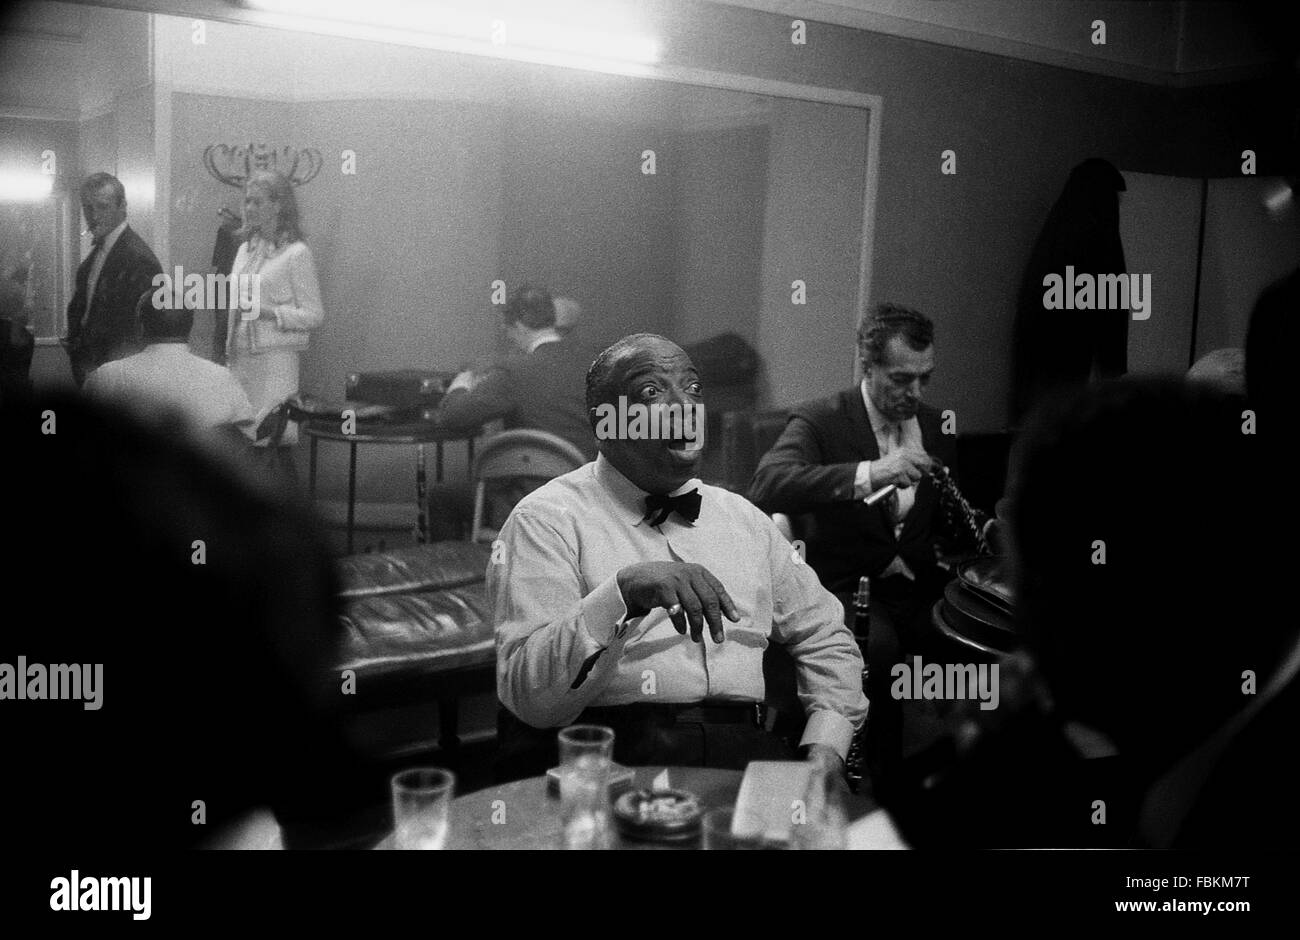 Count Basie -  1966  -  France / Ile-de-France (region) / Paris  -  Count Basie, Paris, 1966   -  Philippe Gras - Stock Image